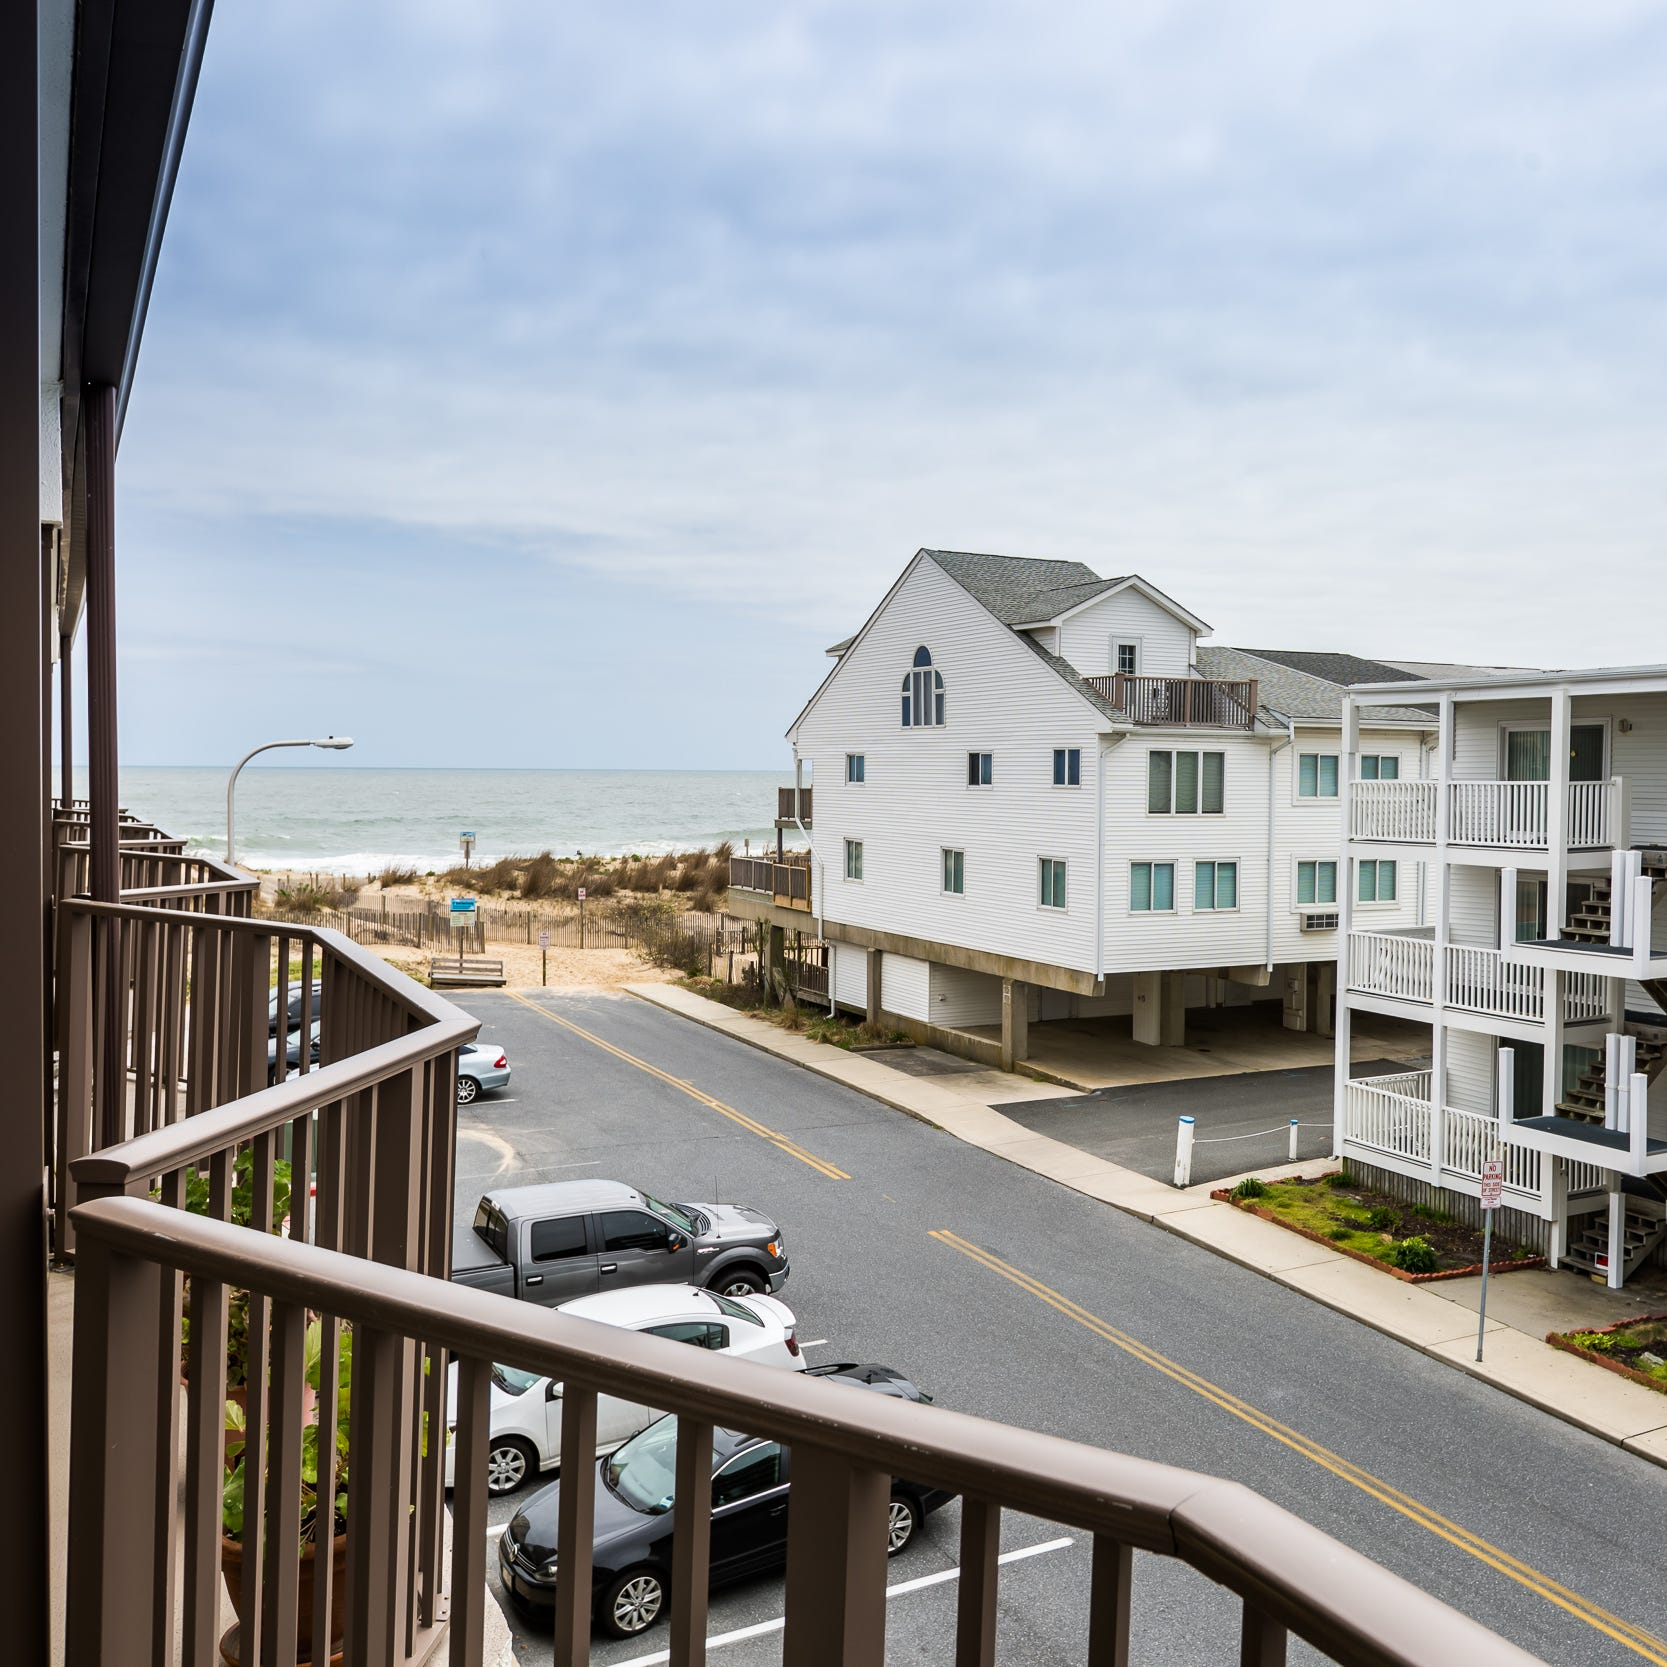 Ocean City's challenge: Rental violators, Airbnb and now a possible room tax bump